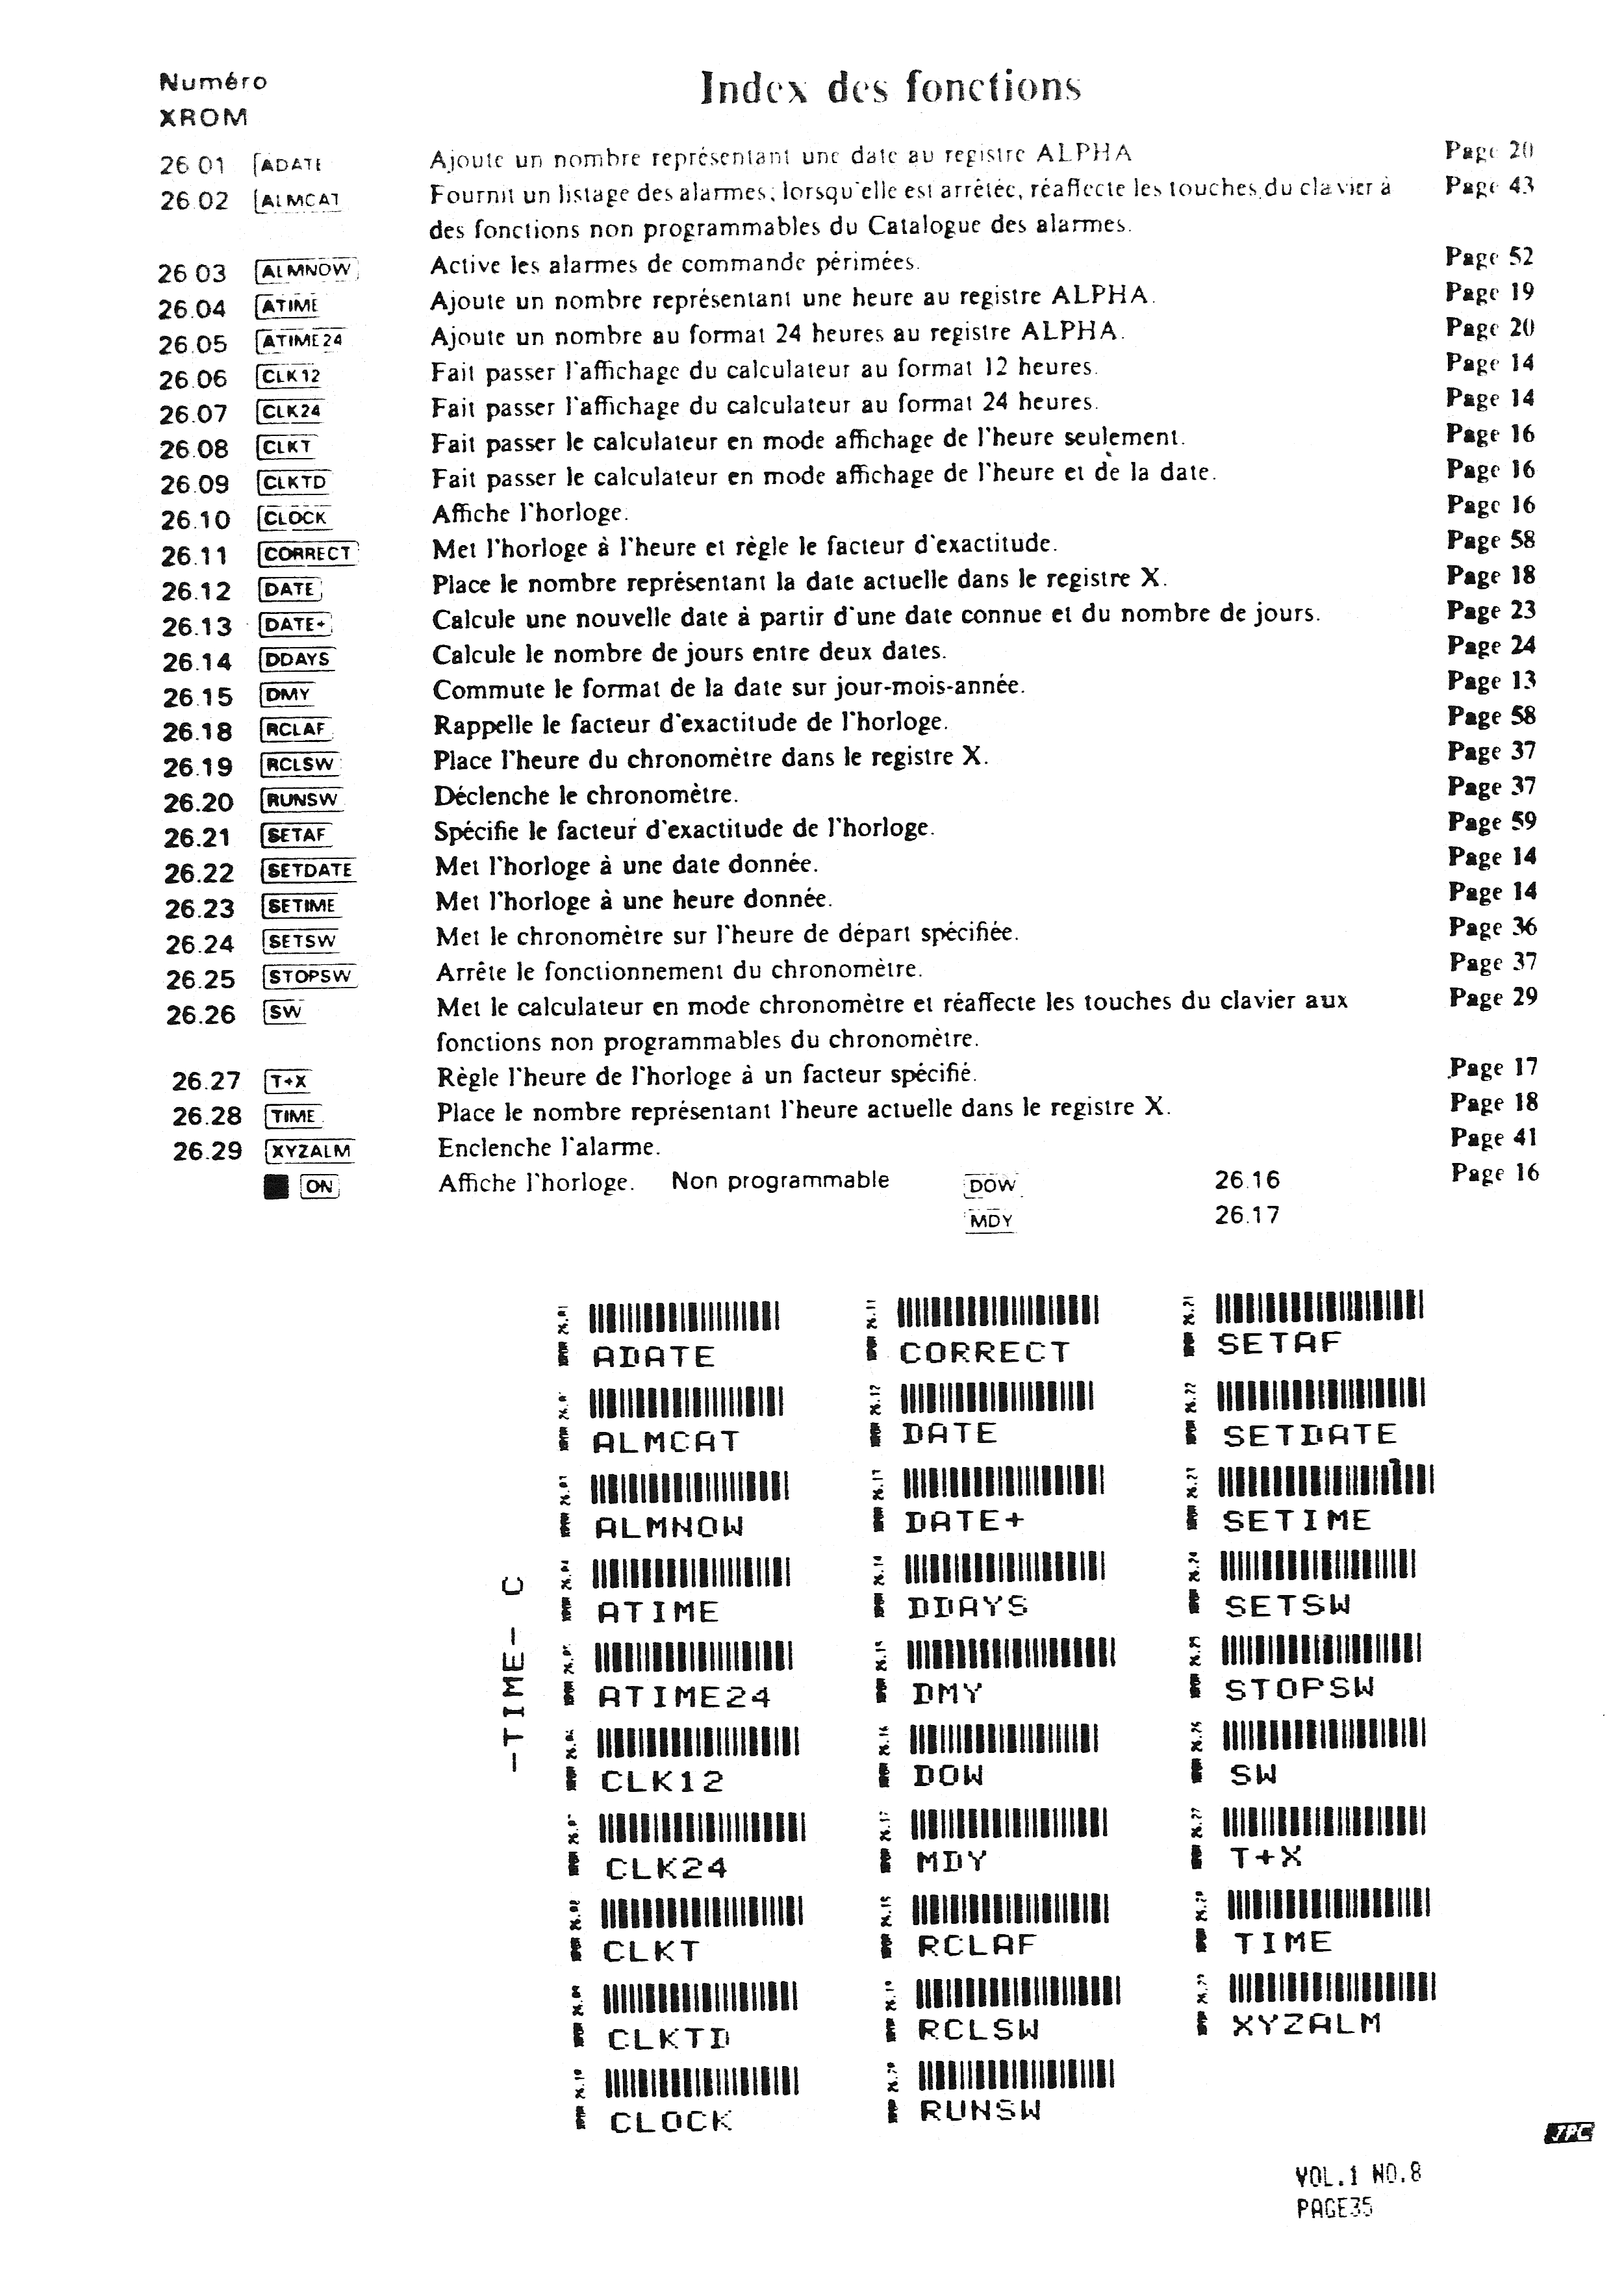 Jp-8-page-35-1000